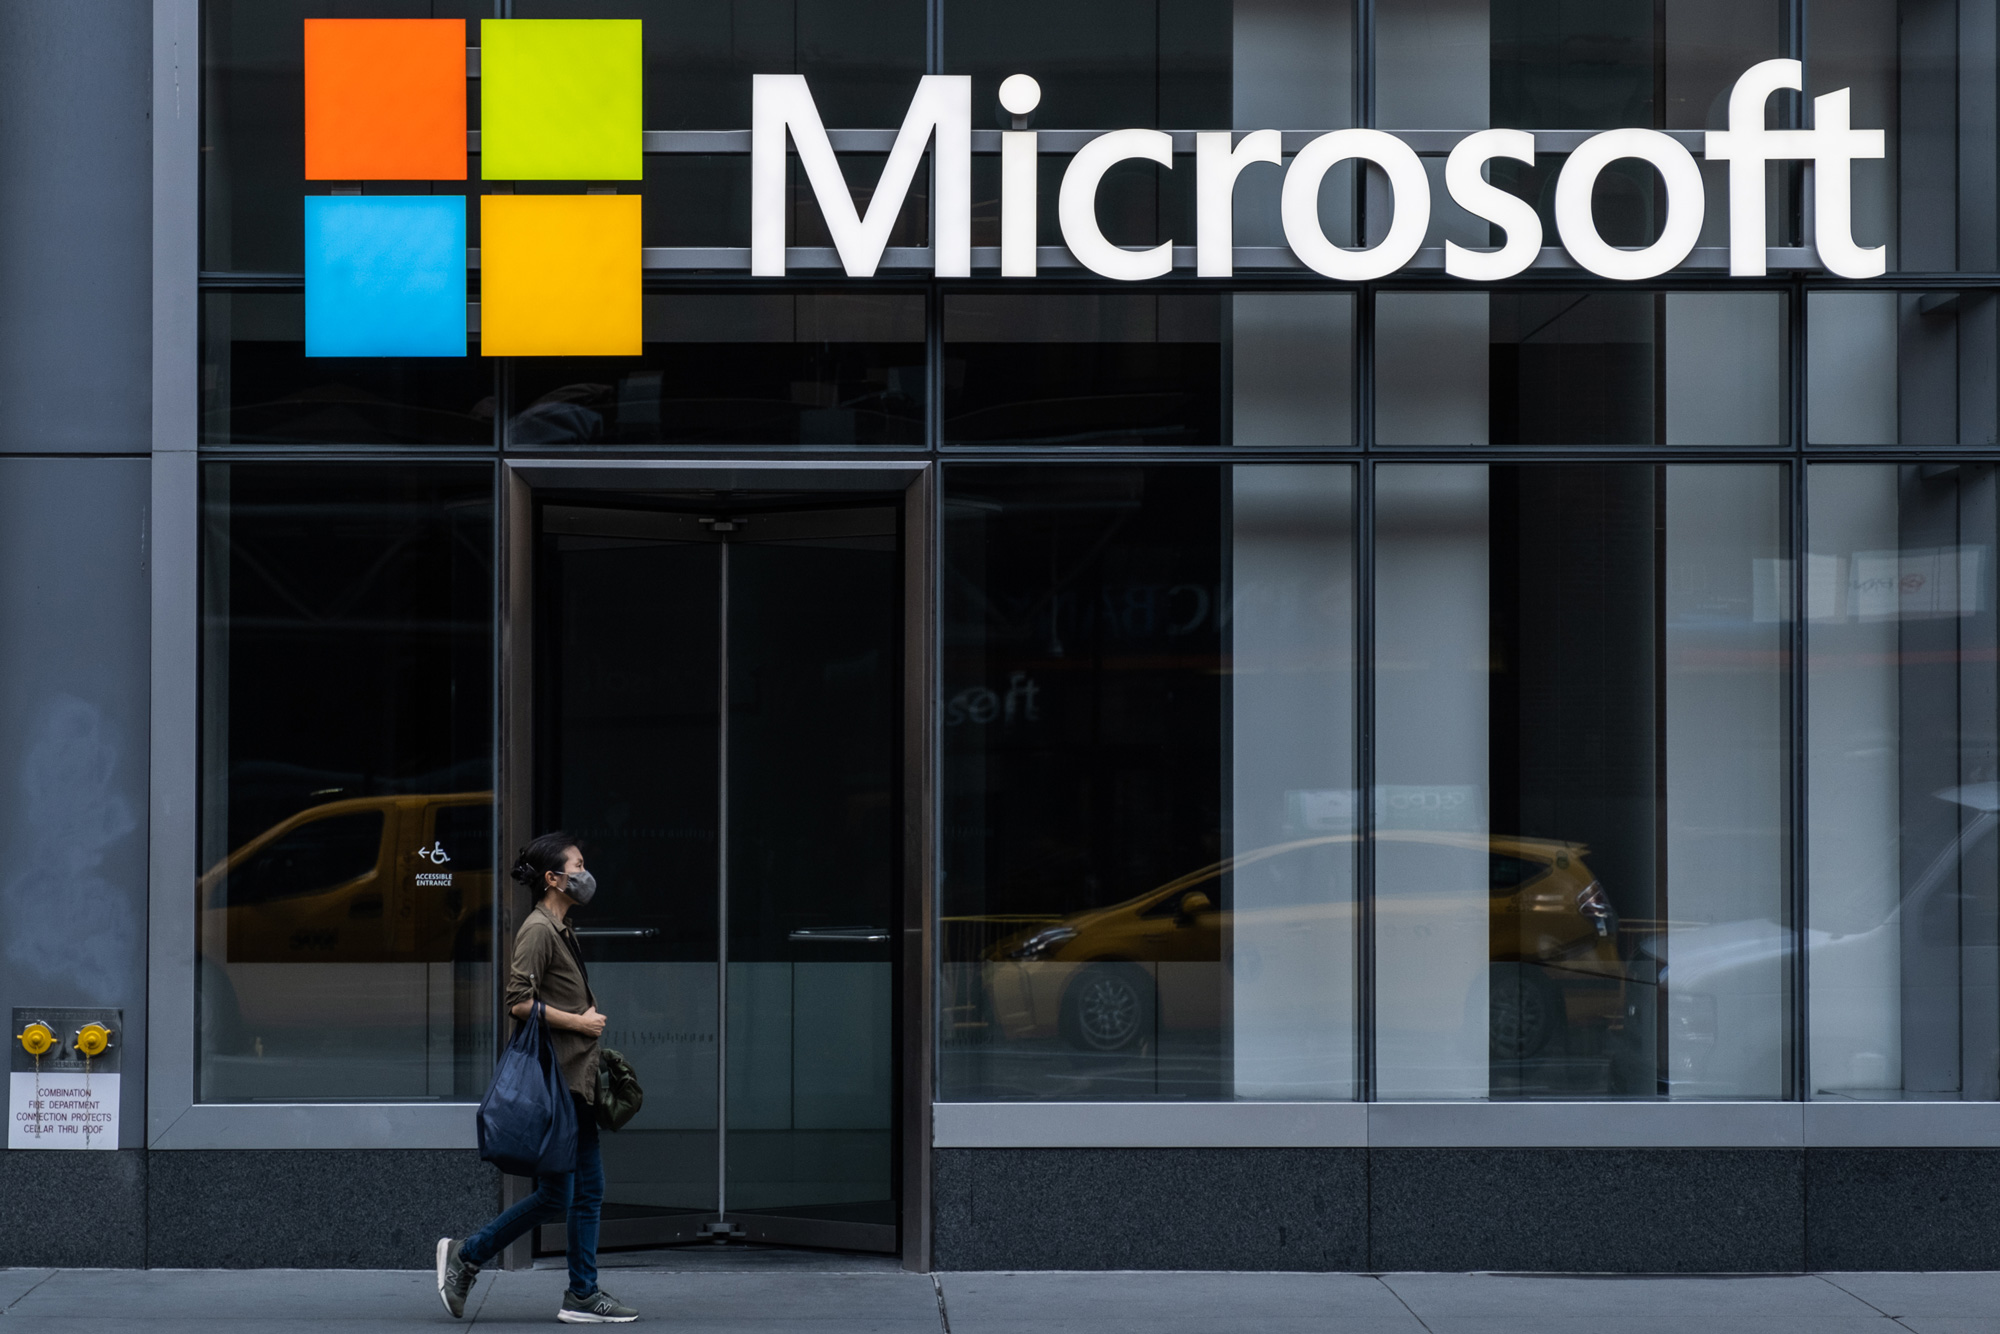 A pedestrian walks past a Microsoft Technology Center in New York City on July 22.